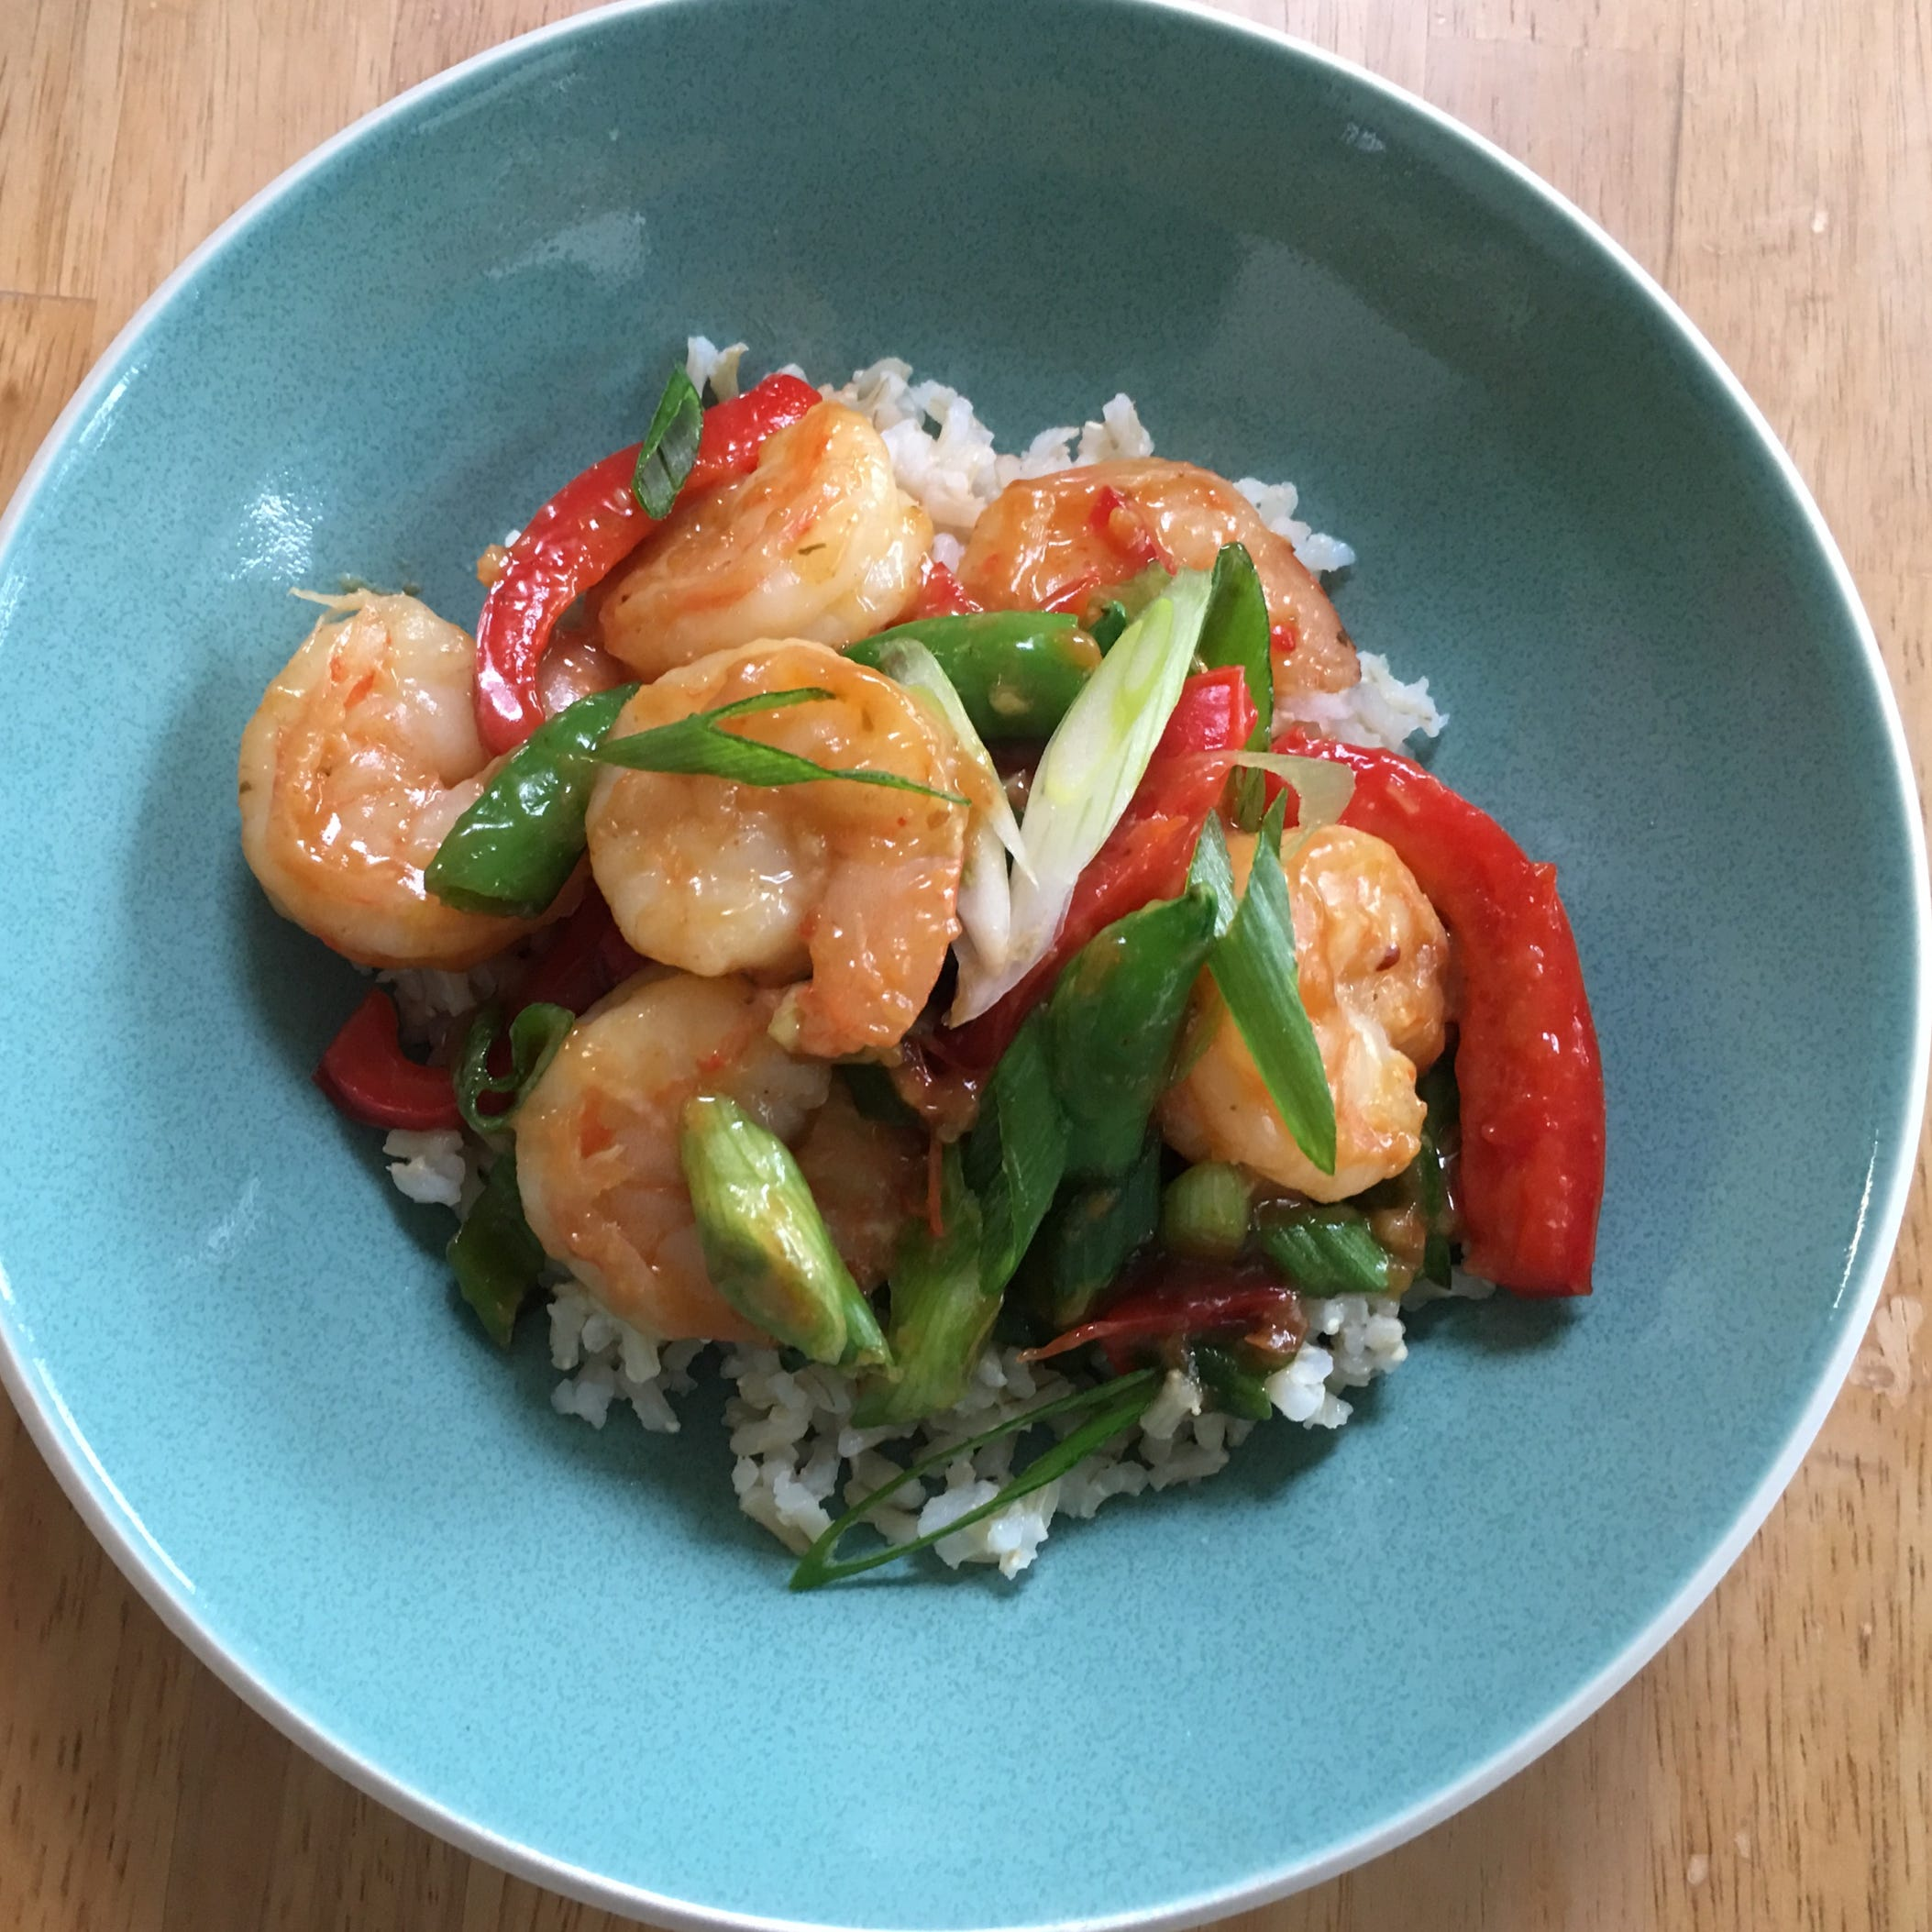 Quick-cooking shrimp, bottled sauce make this stir-fry fast and easy